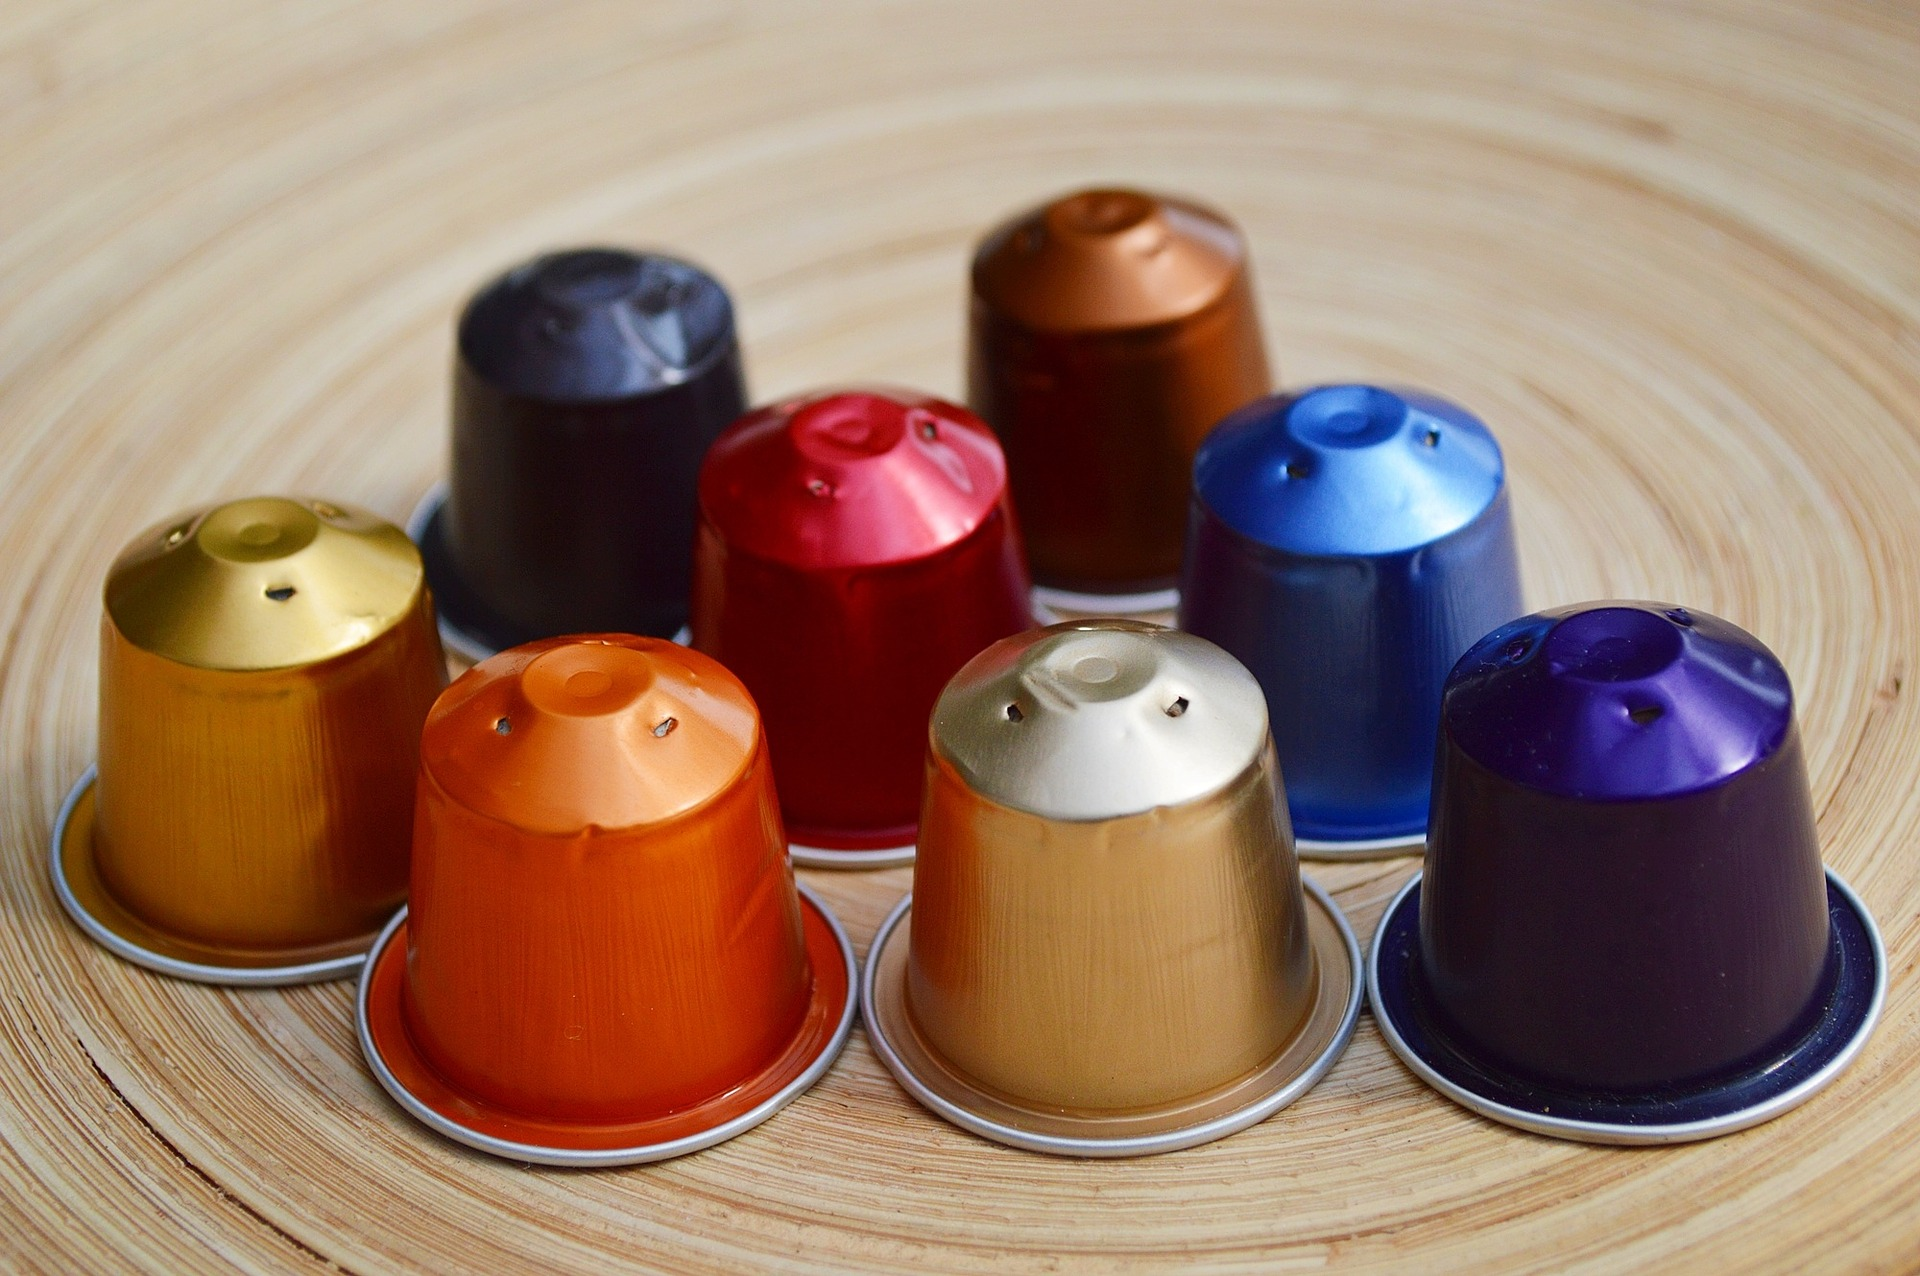 Nespresso and Rio Tinto are Going Green With Eco-Friendly Coffee Pods